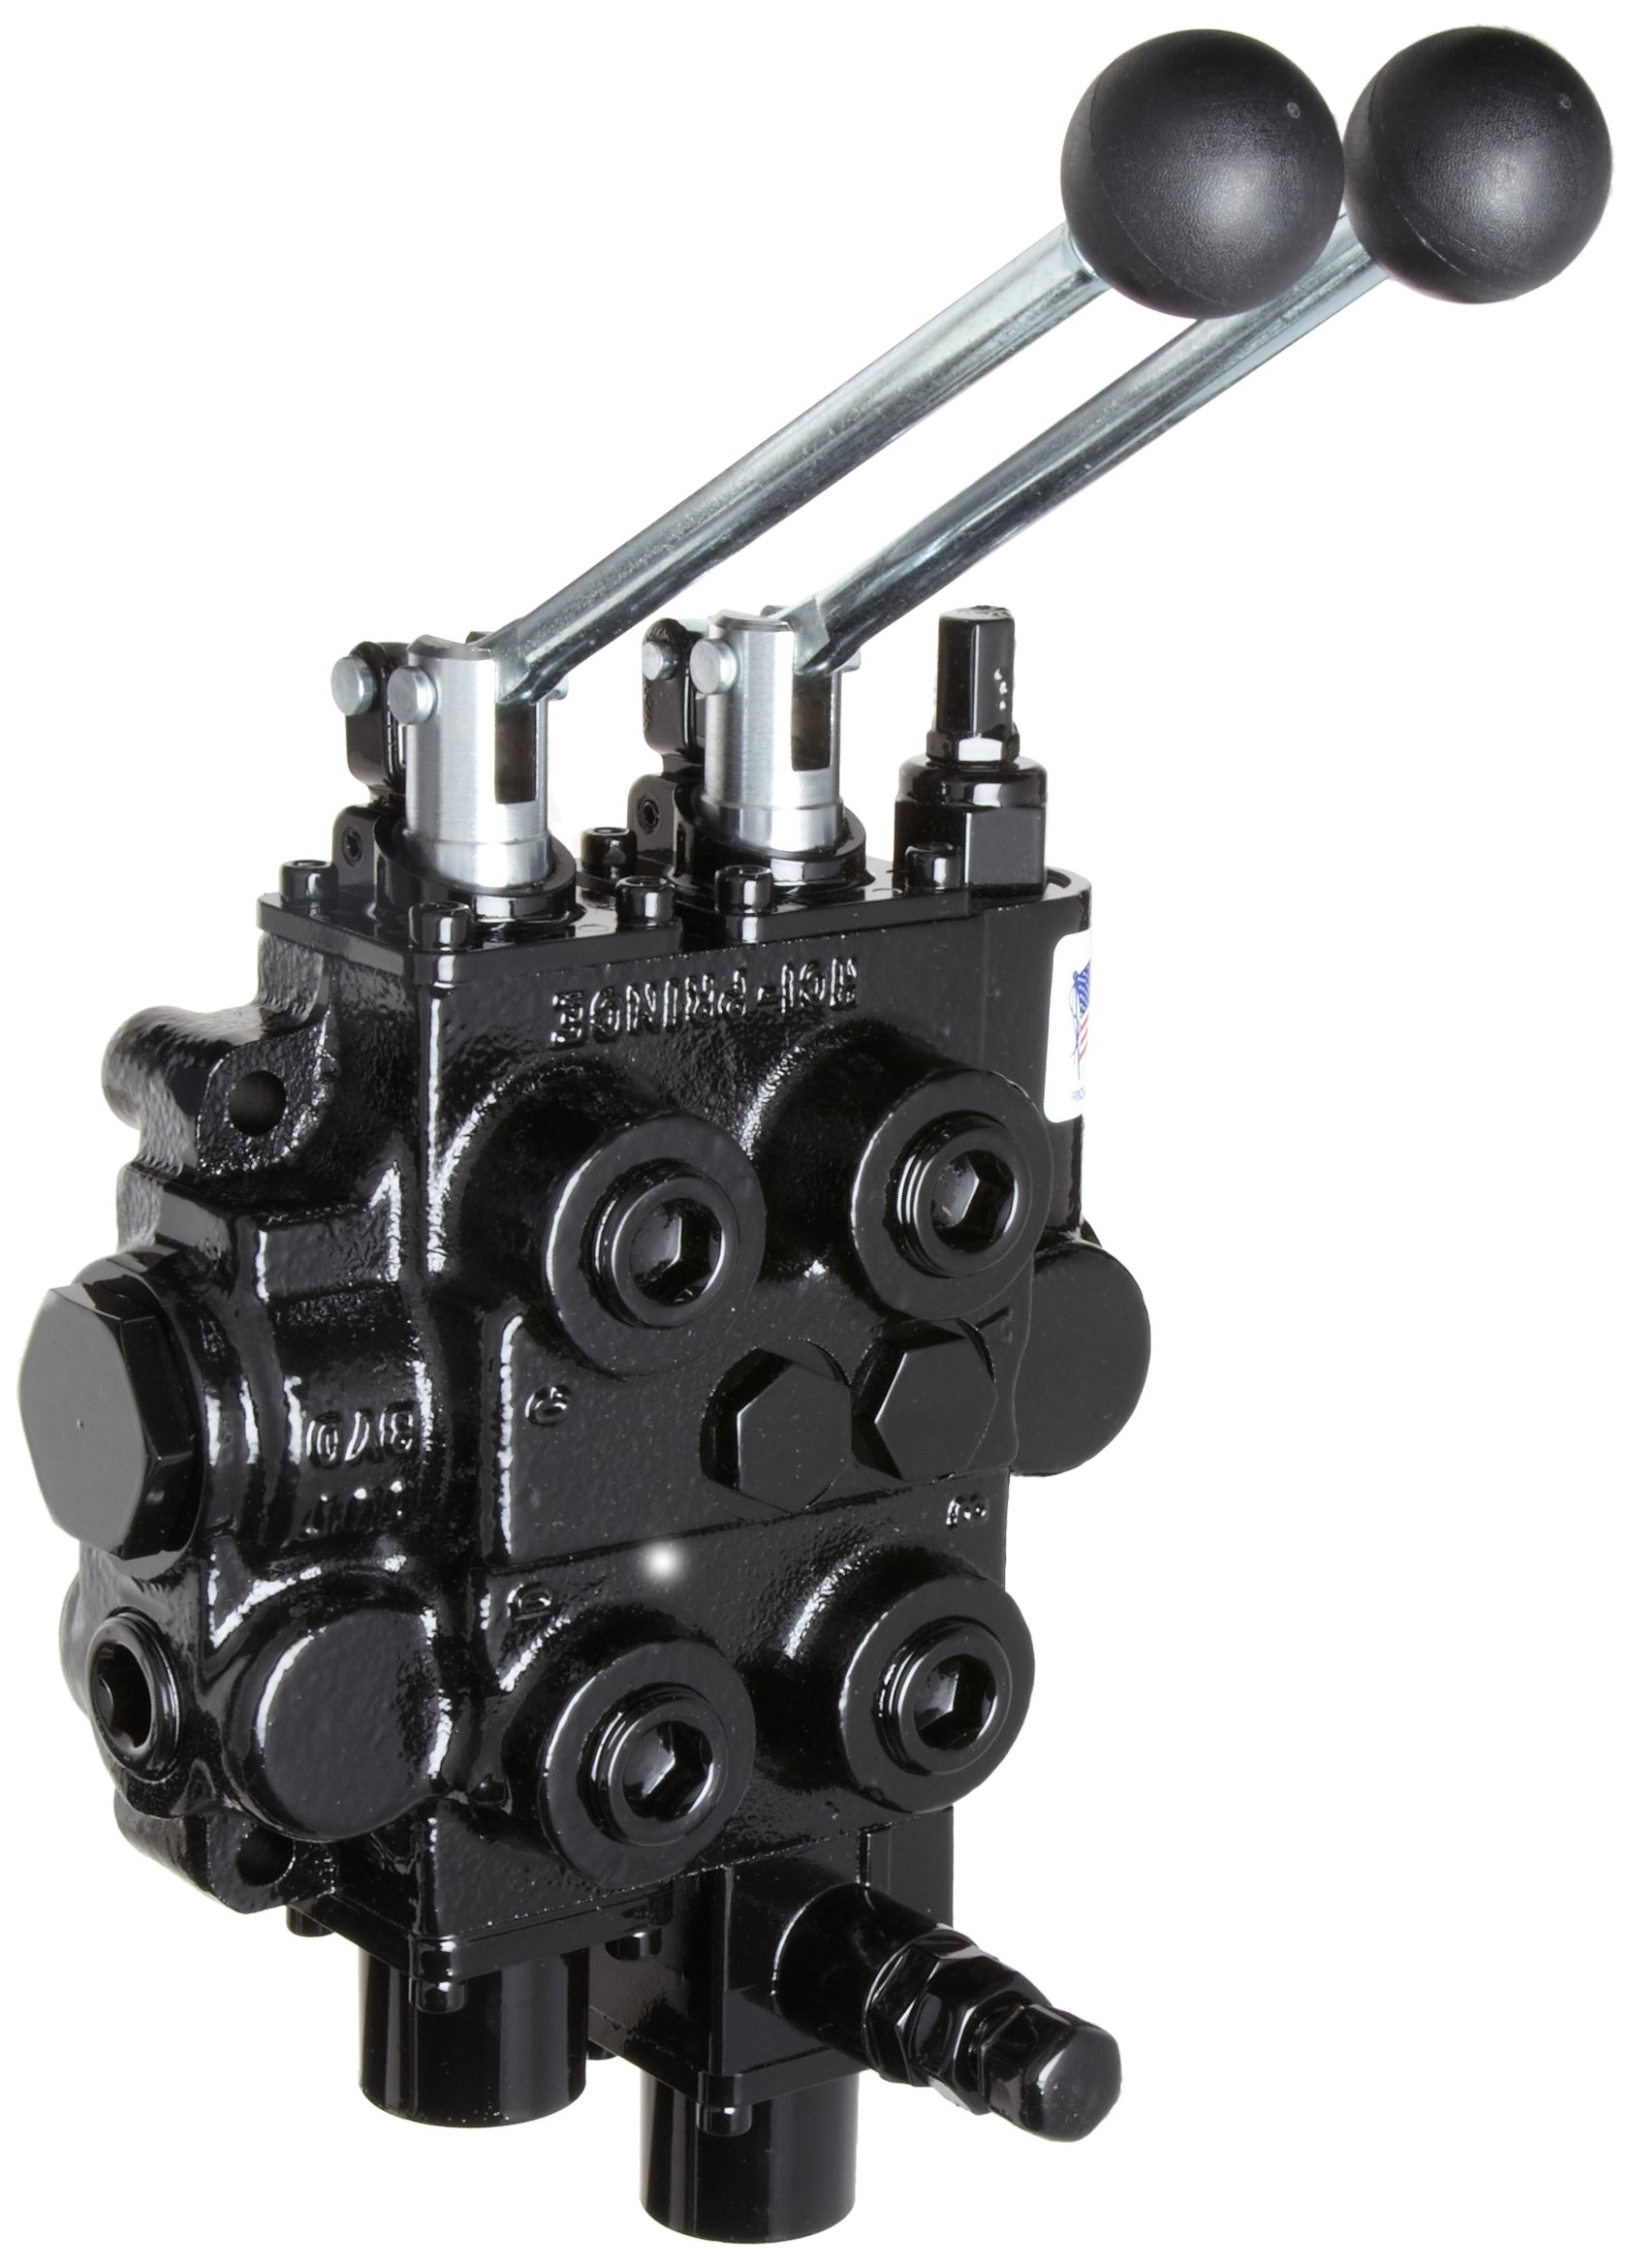 Prince RD523CCEA5A4B1 Directional Control Valve, Monoblock, Cast Iron, 2 Spool, 4 Ways, 3 Positions, Tandem, Pressure Release Detent 1 Position Detent, Spool ''Out'' Only, Spring Center, Spring Center, Lever Handle, 3000 psi, 25 gpm, In/Out: 3/4'' NPT Female